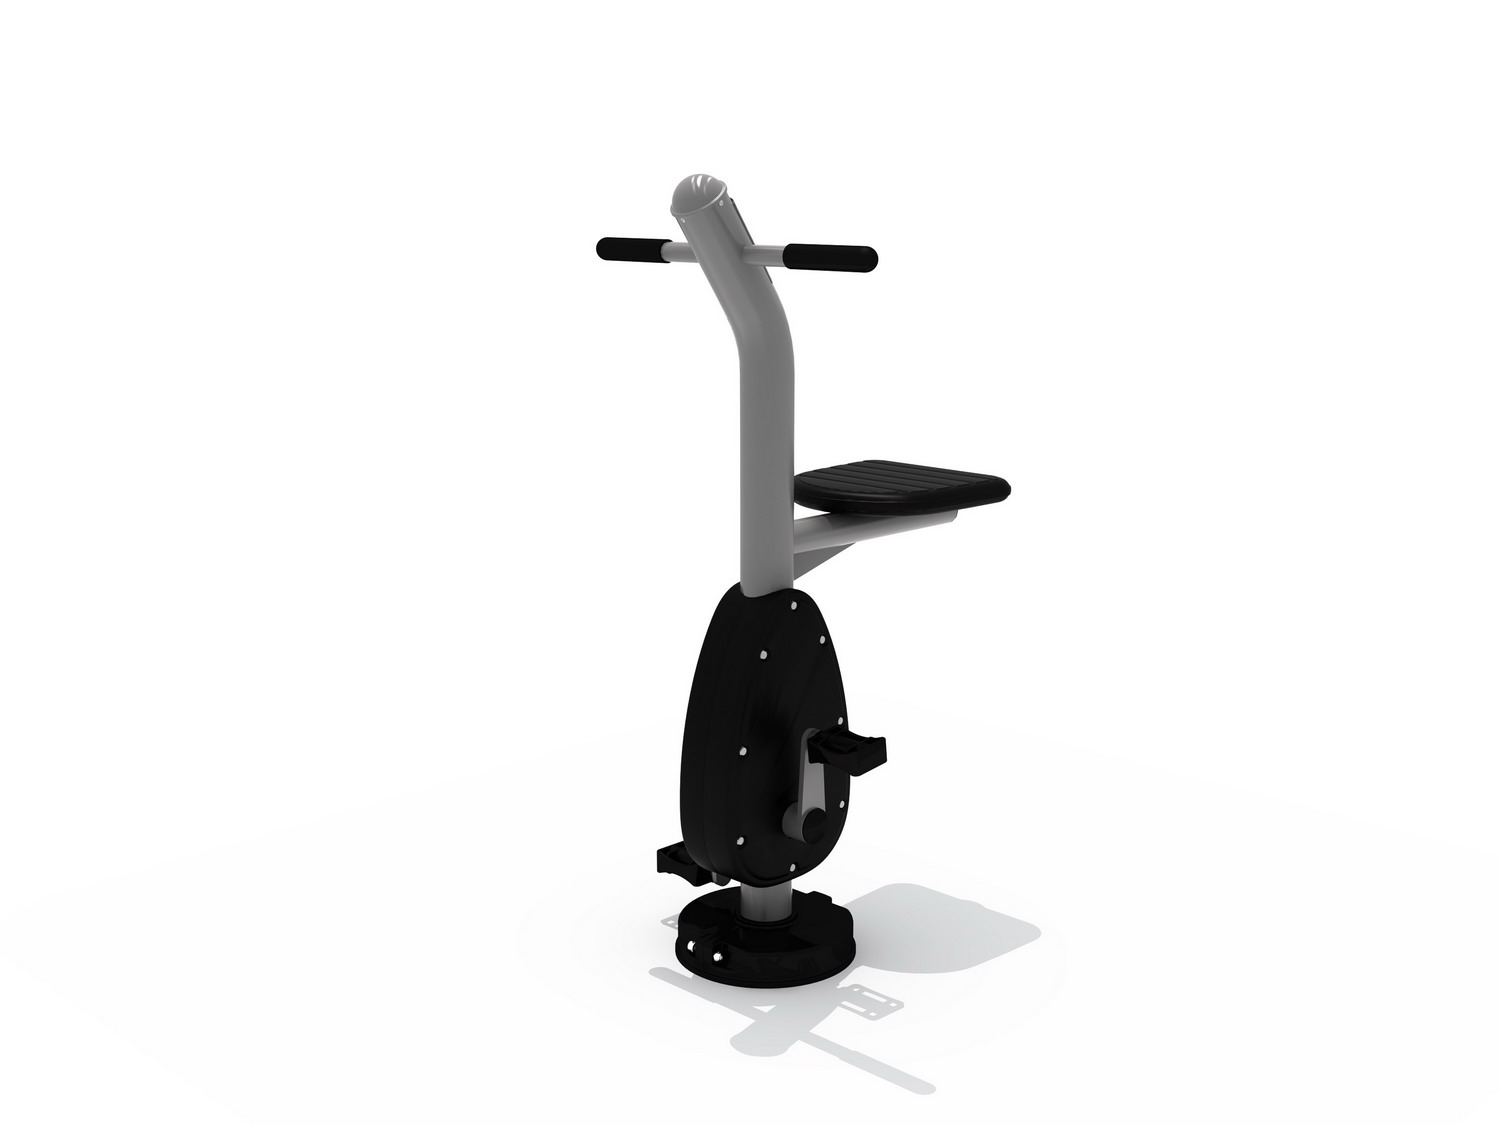 Upright Cycle Trainer